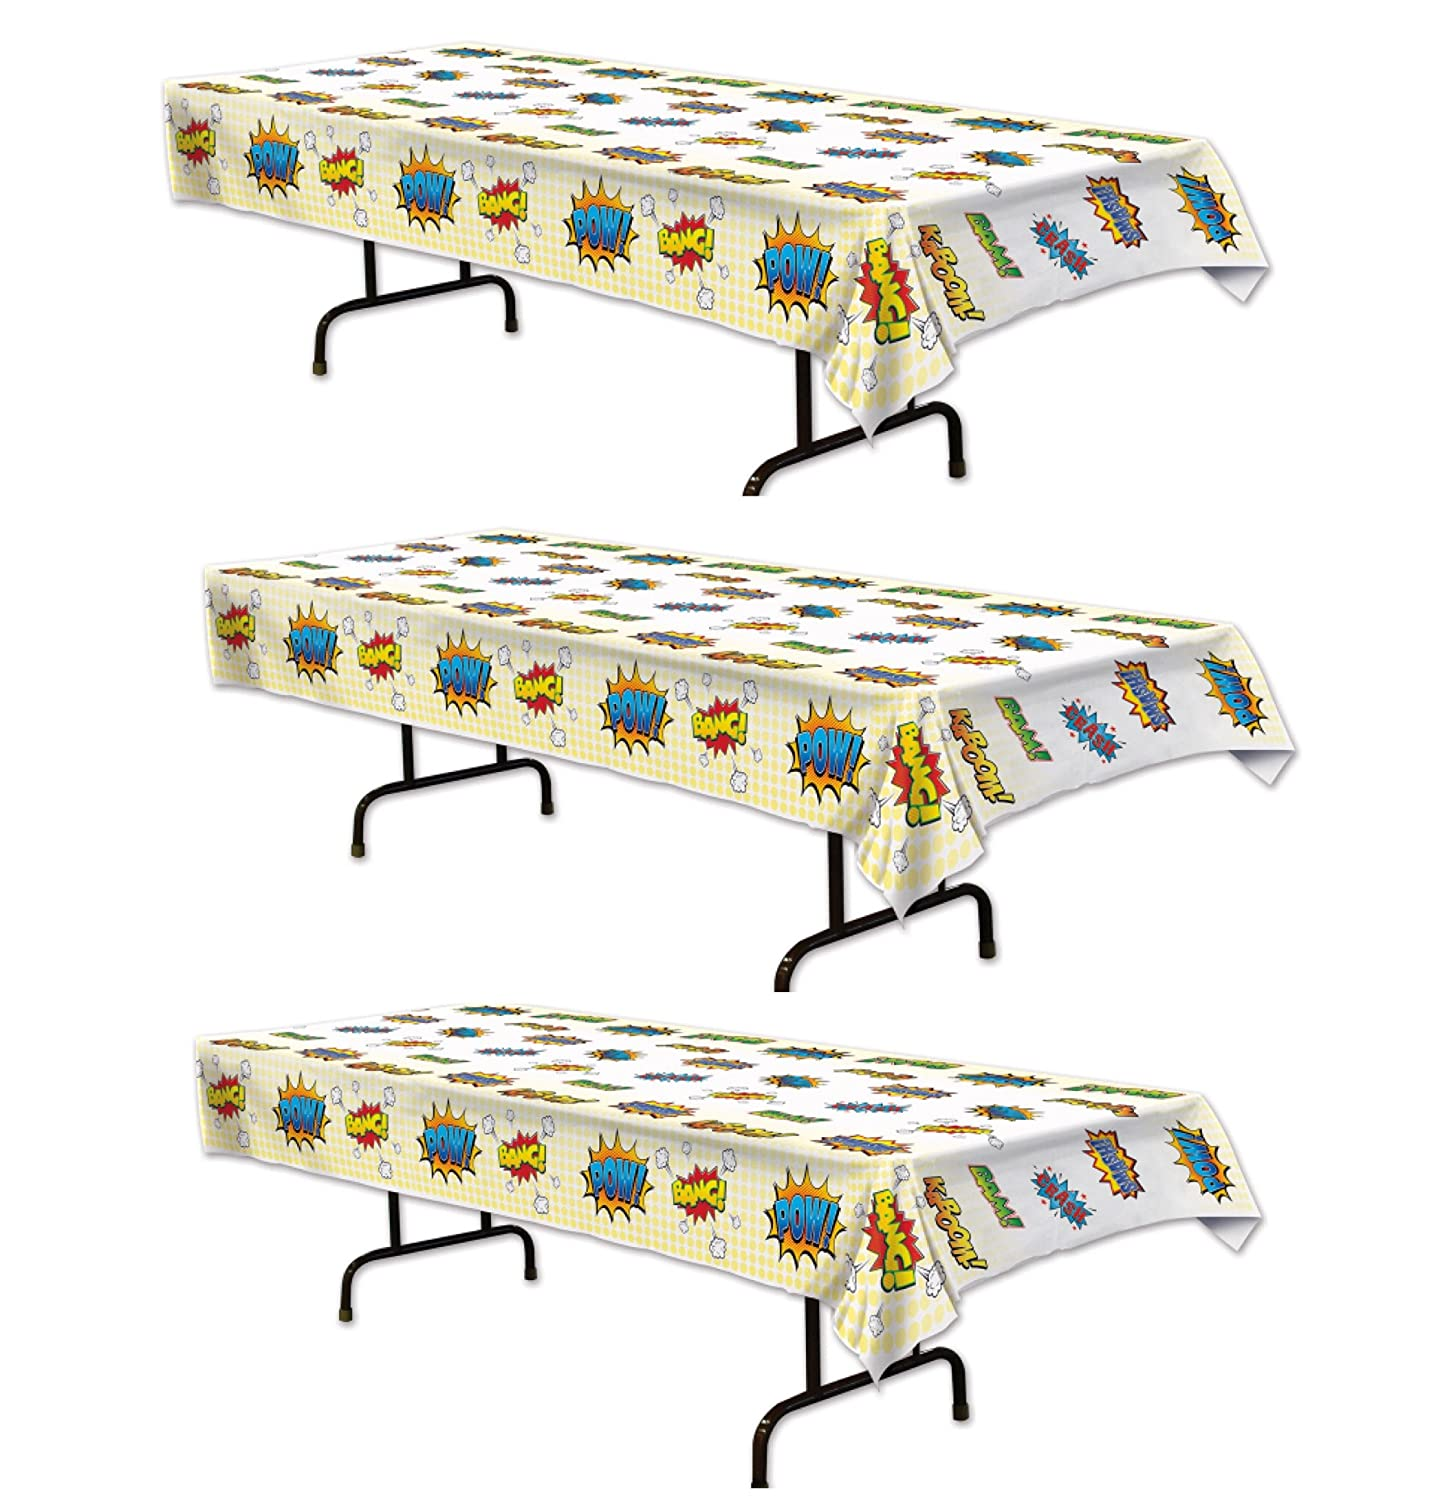 3 Super Hero Tablecover for themed parties and events Value Bundle of 3 Bstl Co